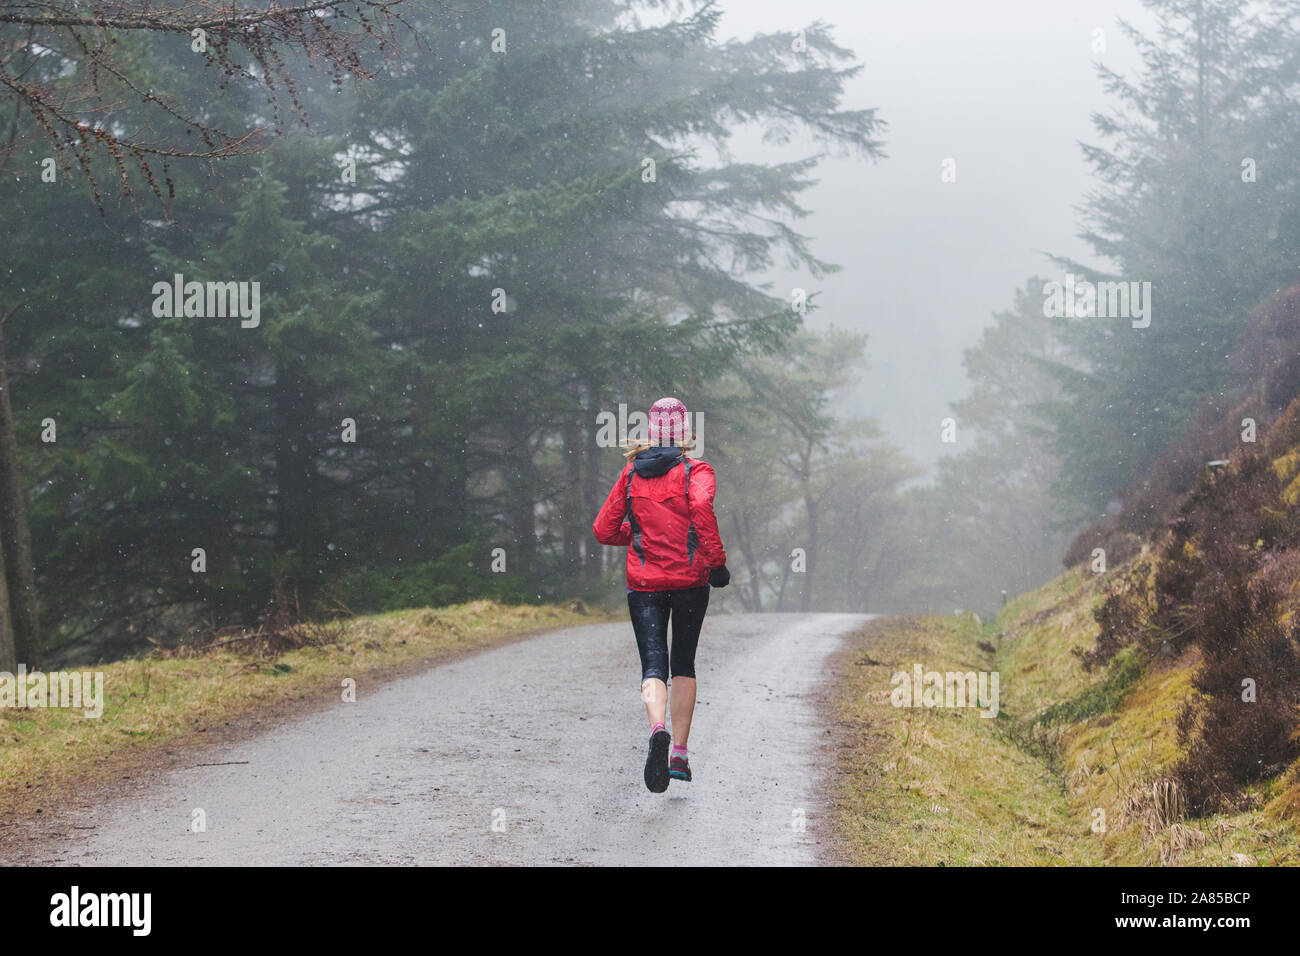 Woman jogging on trail in rainy woods Stock Photo